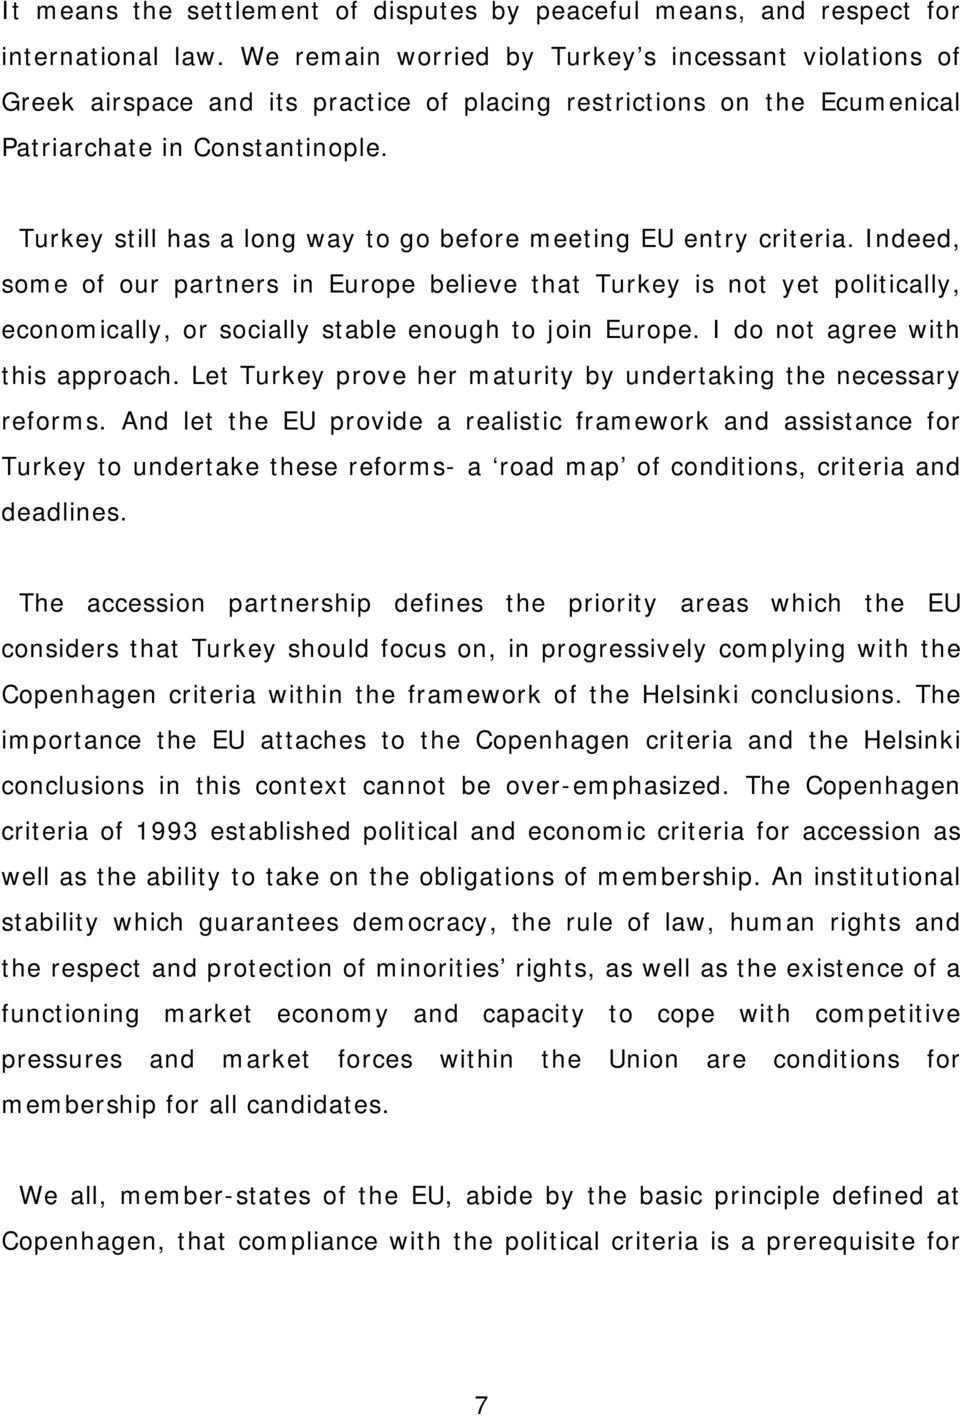 Turkey still has a long way to go before meeting EU entry criteria.